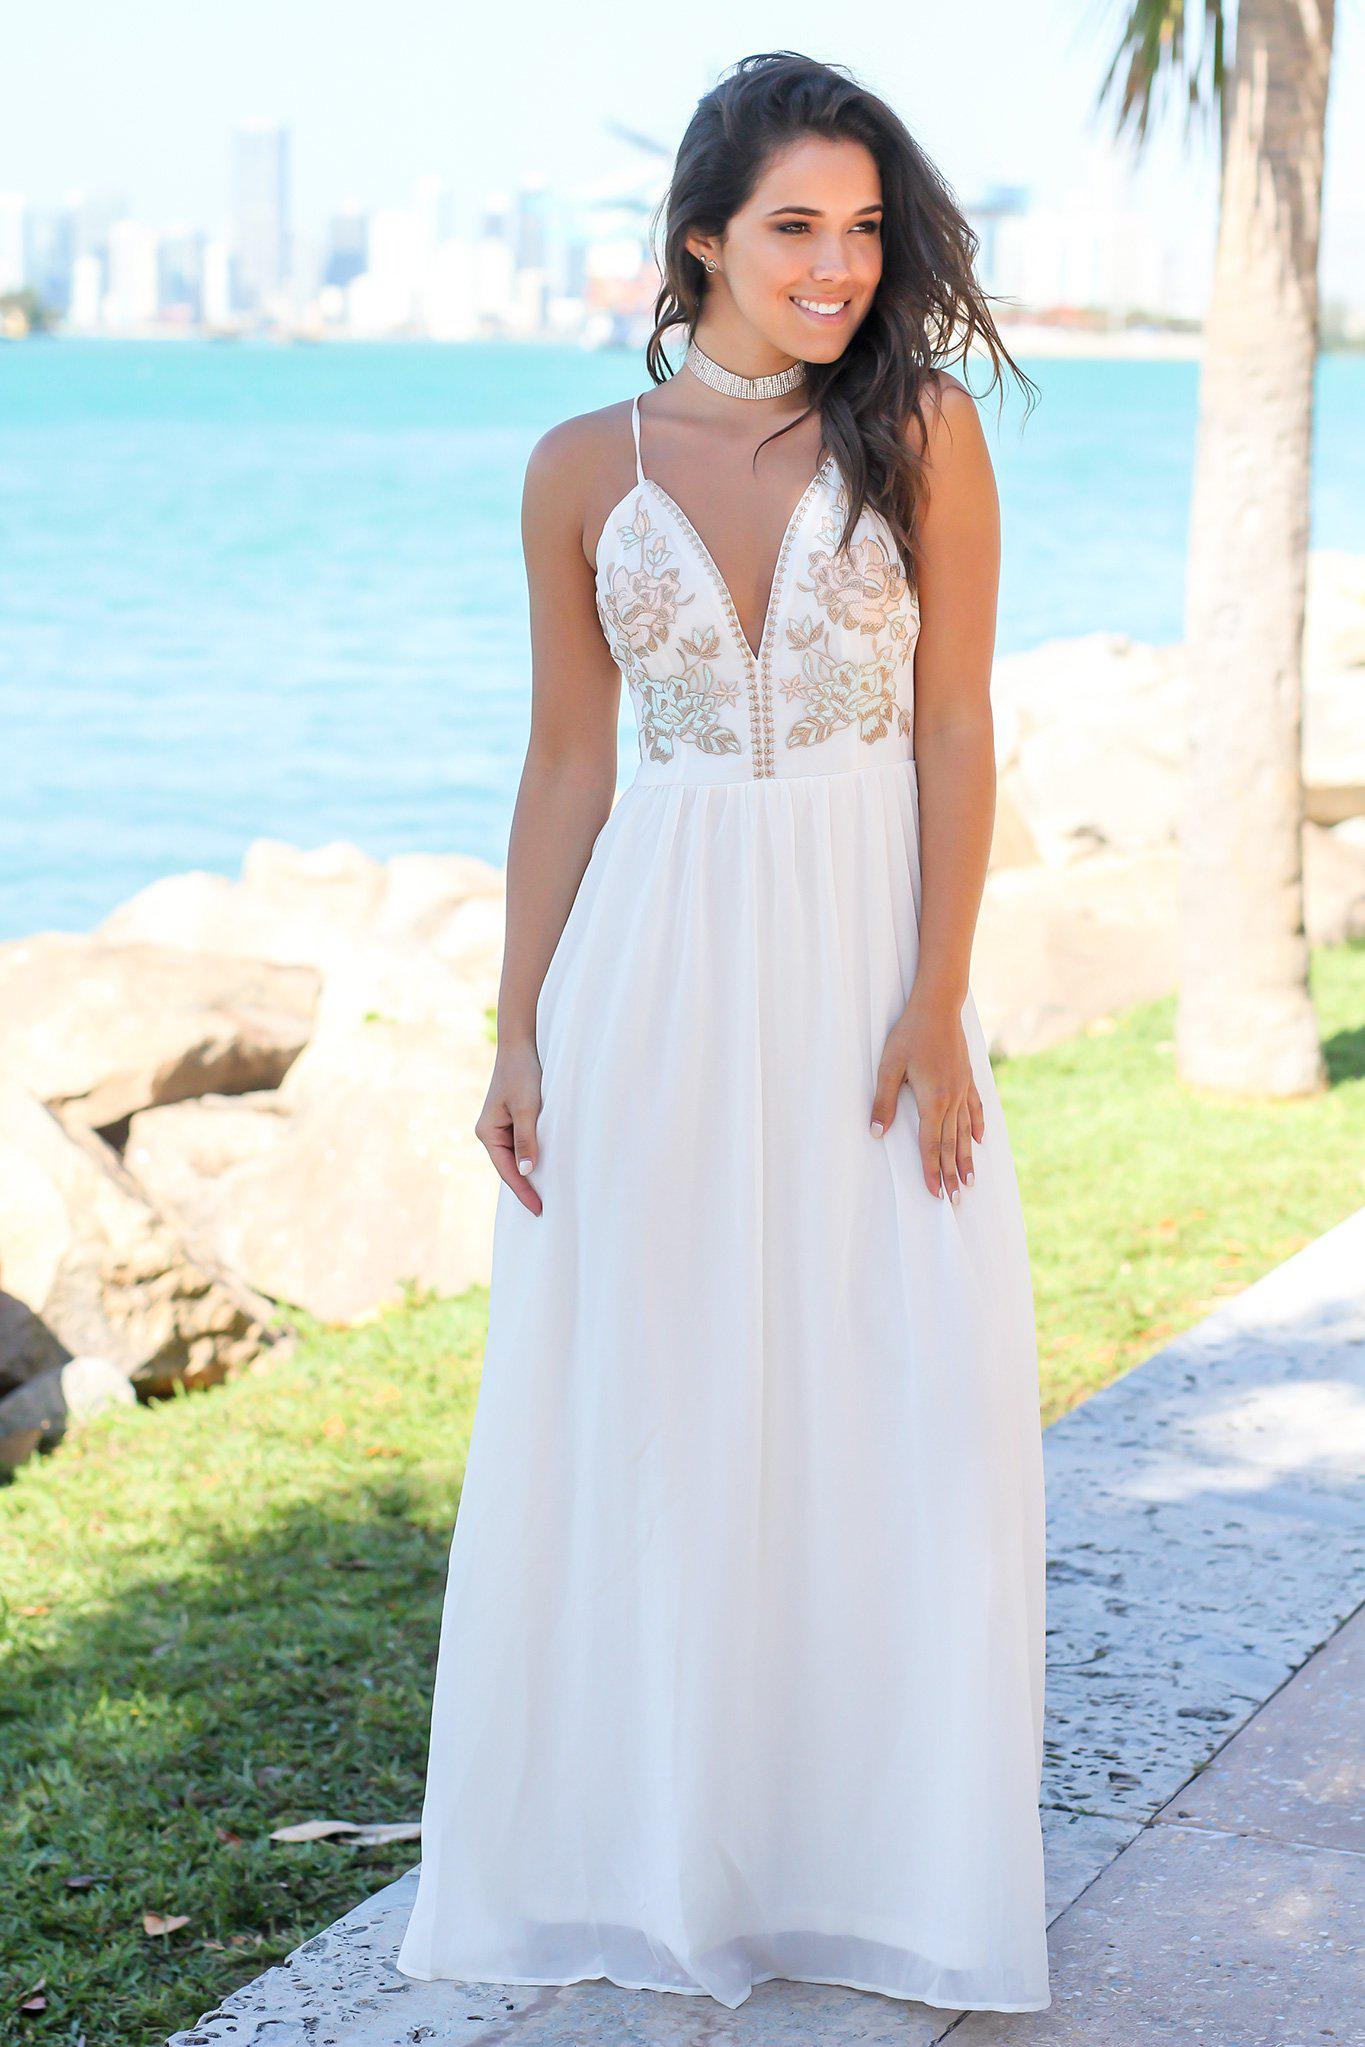 60fbe2f432e7 Ivory Maxi Dress with Embroidered Top and Criss Cross Back | Maxi ...